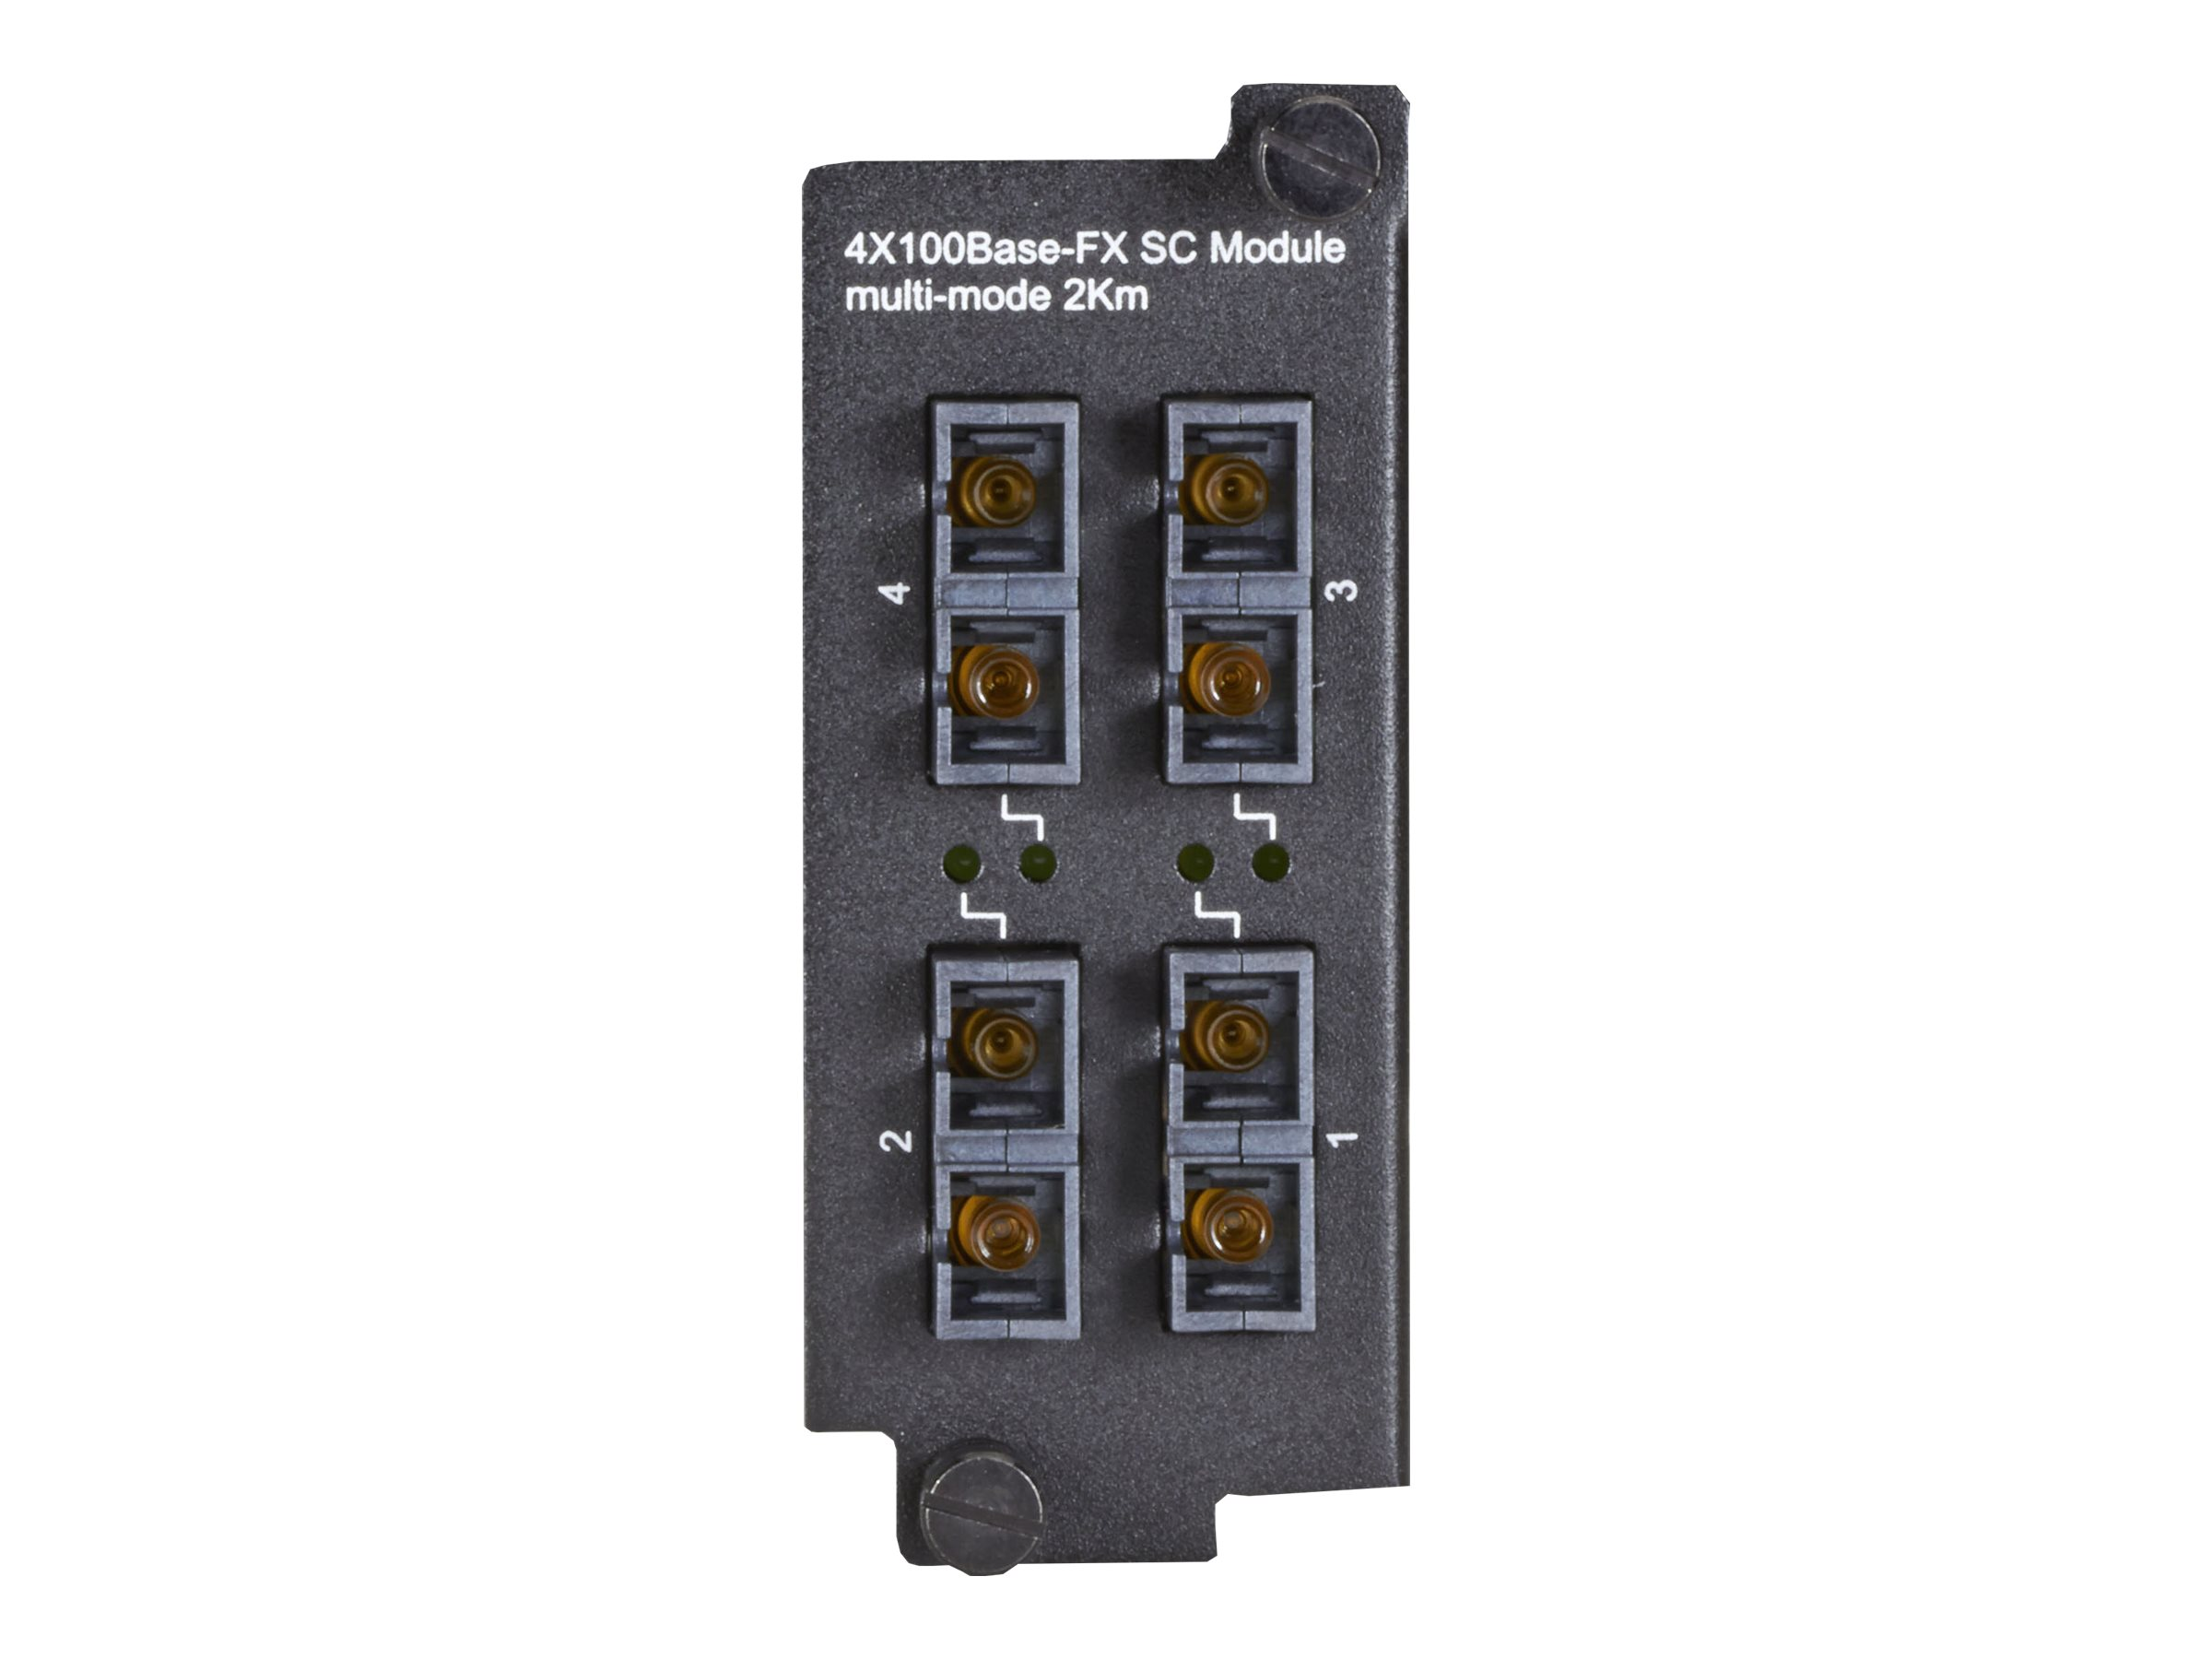 Black Box LE2700 Series Hardened Managed Modular Switch Module - switch - 4 ports - managed - plug-in module